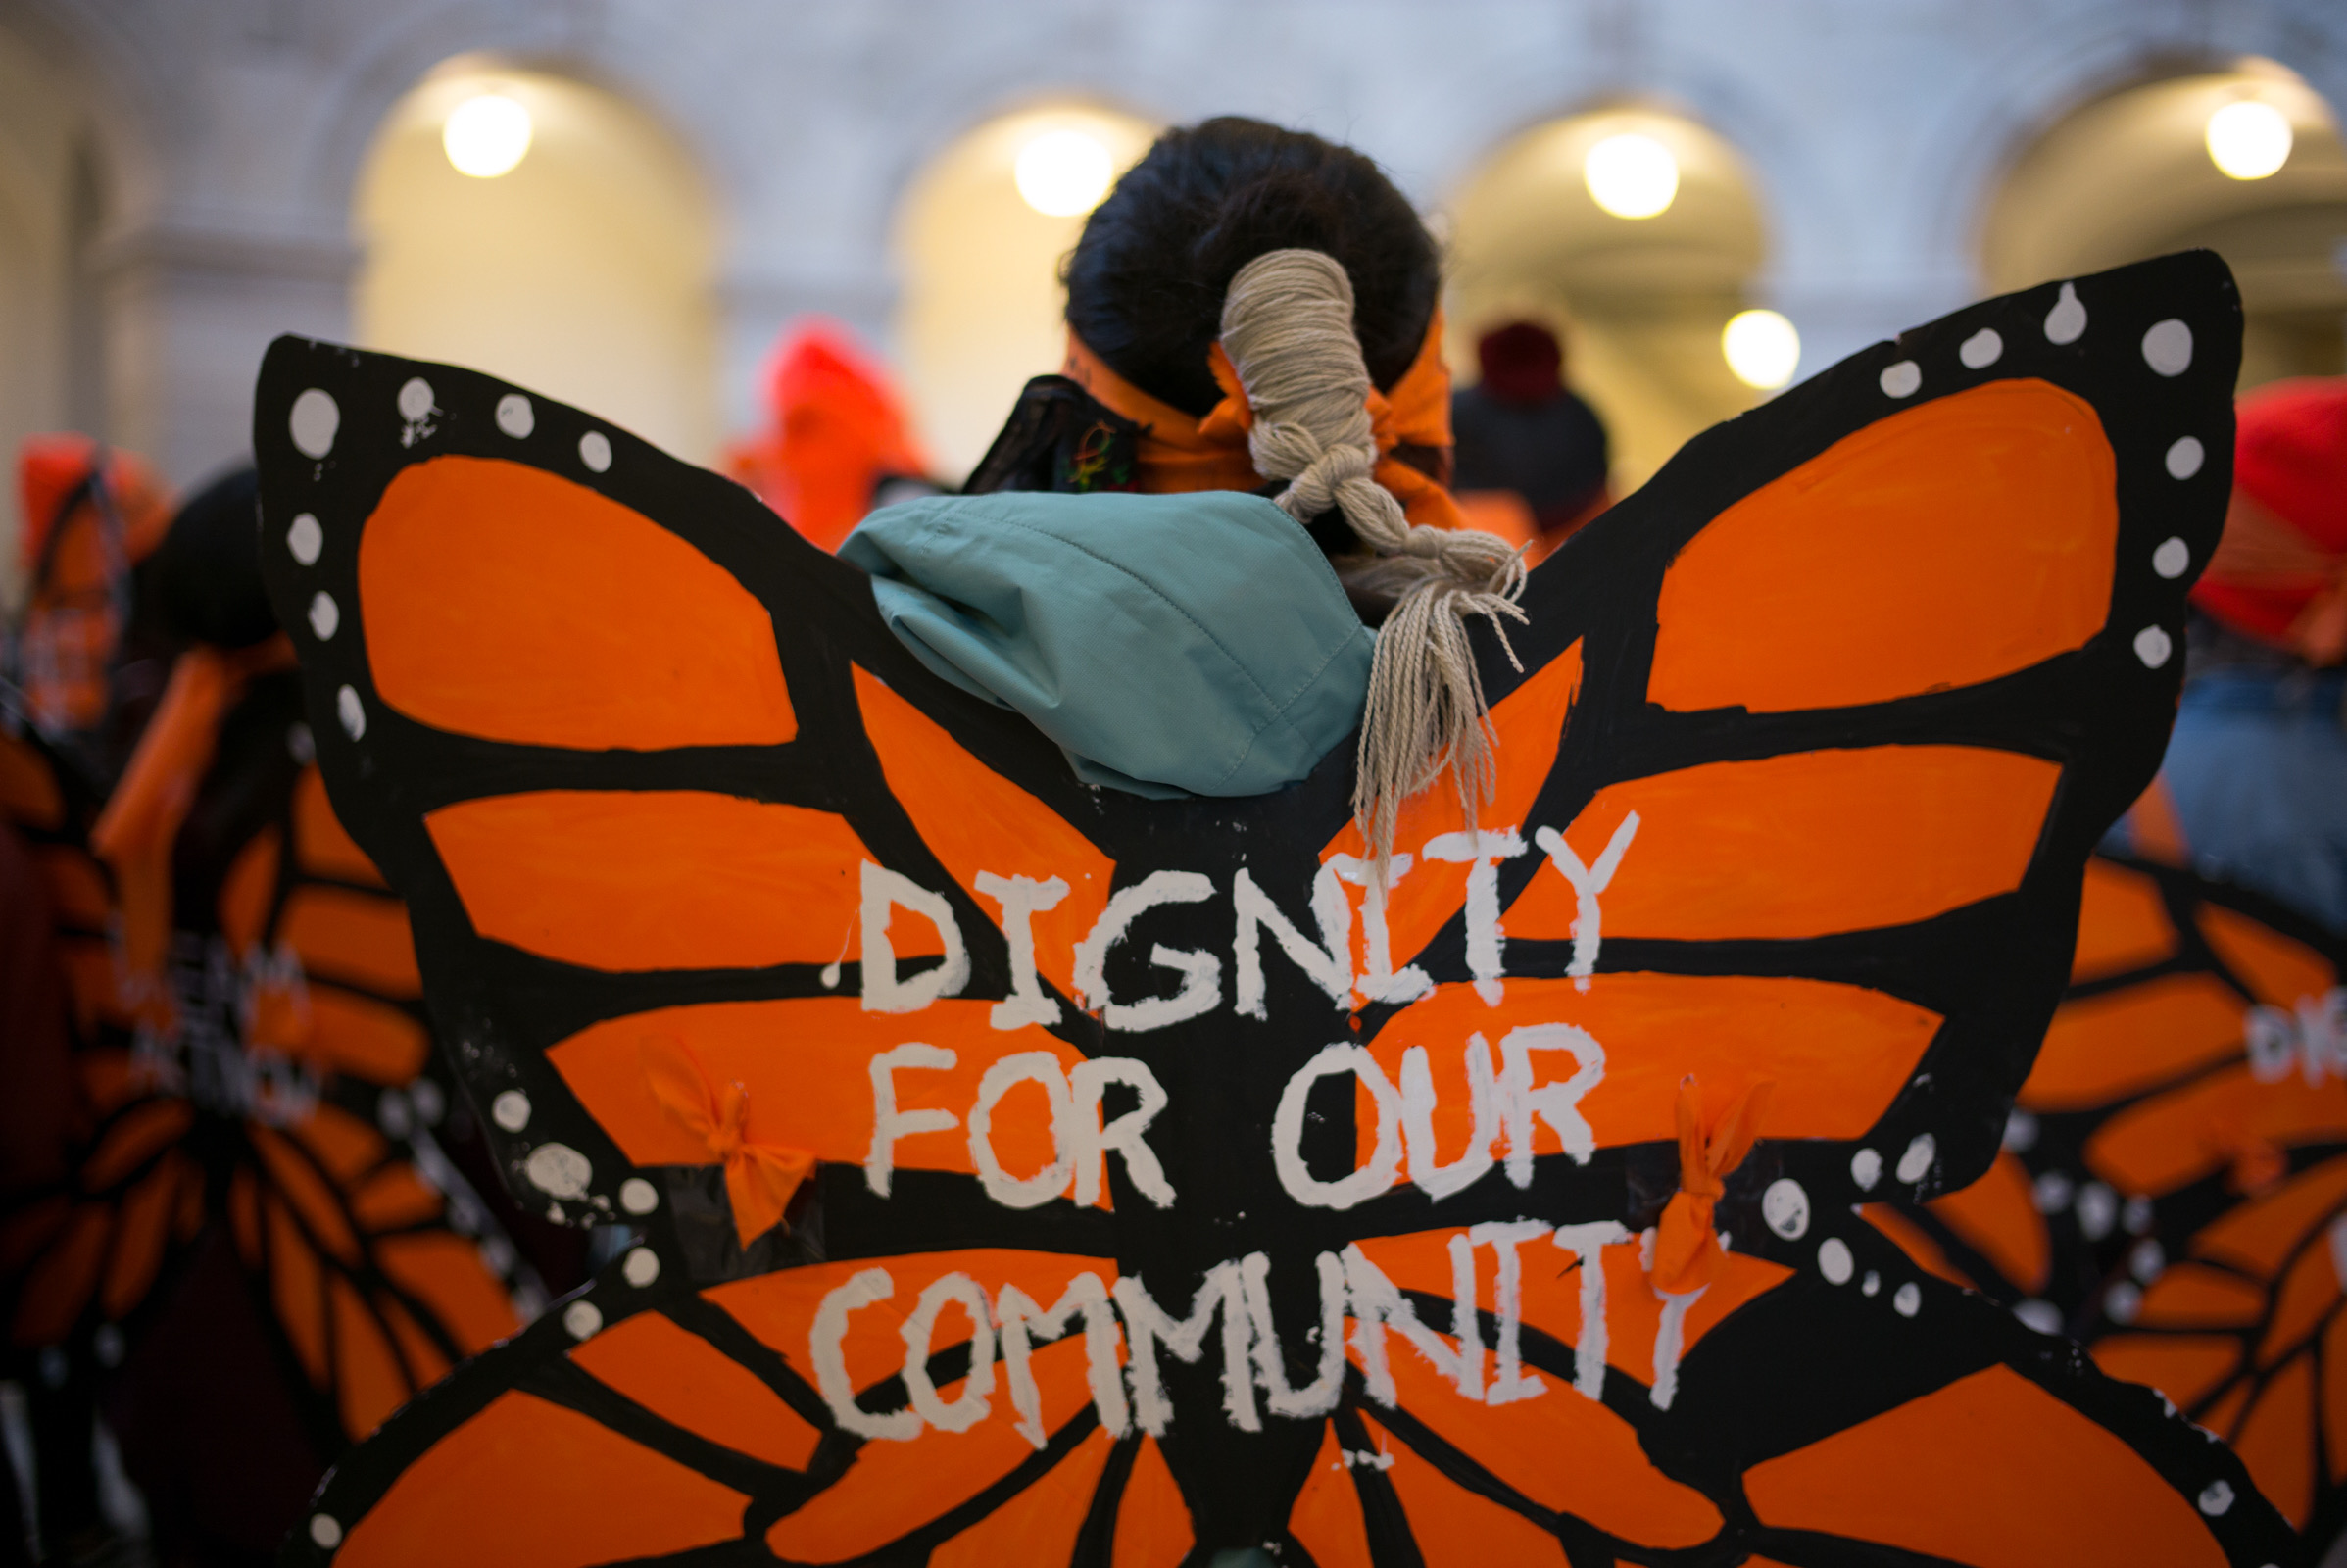 Fuego butterfly: dignity for our community